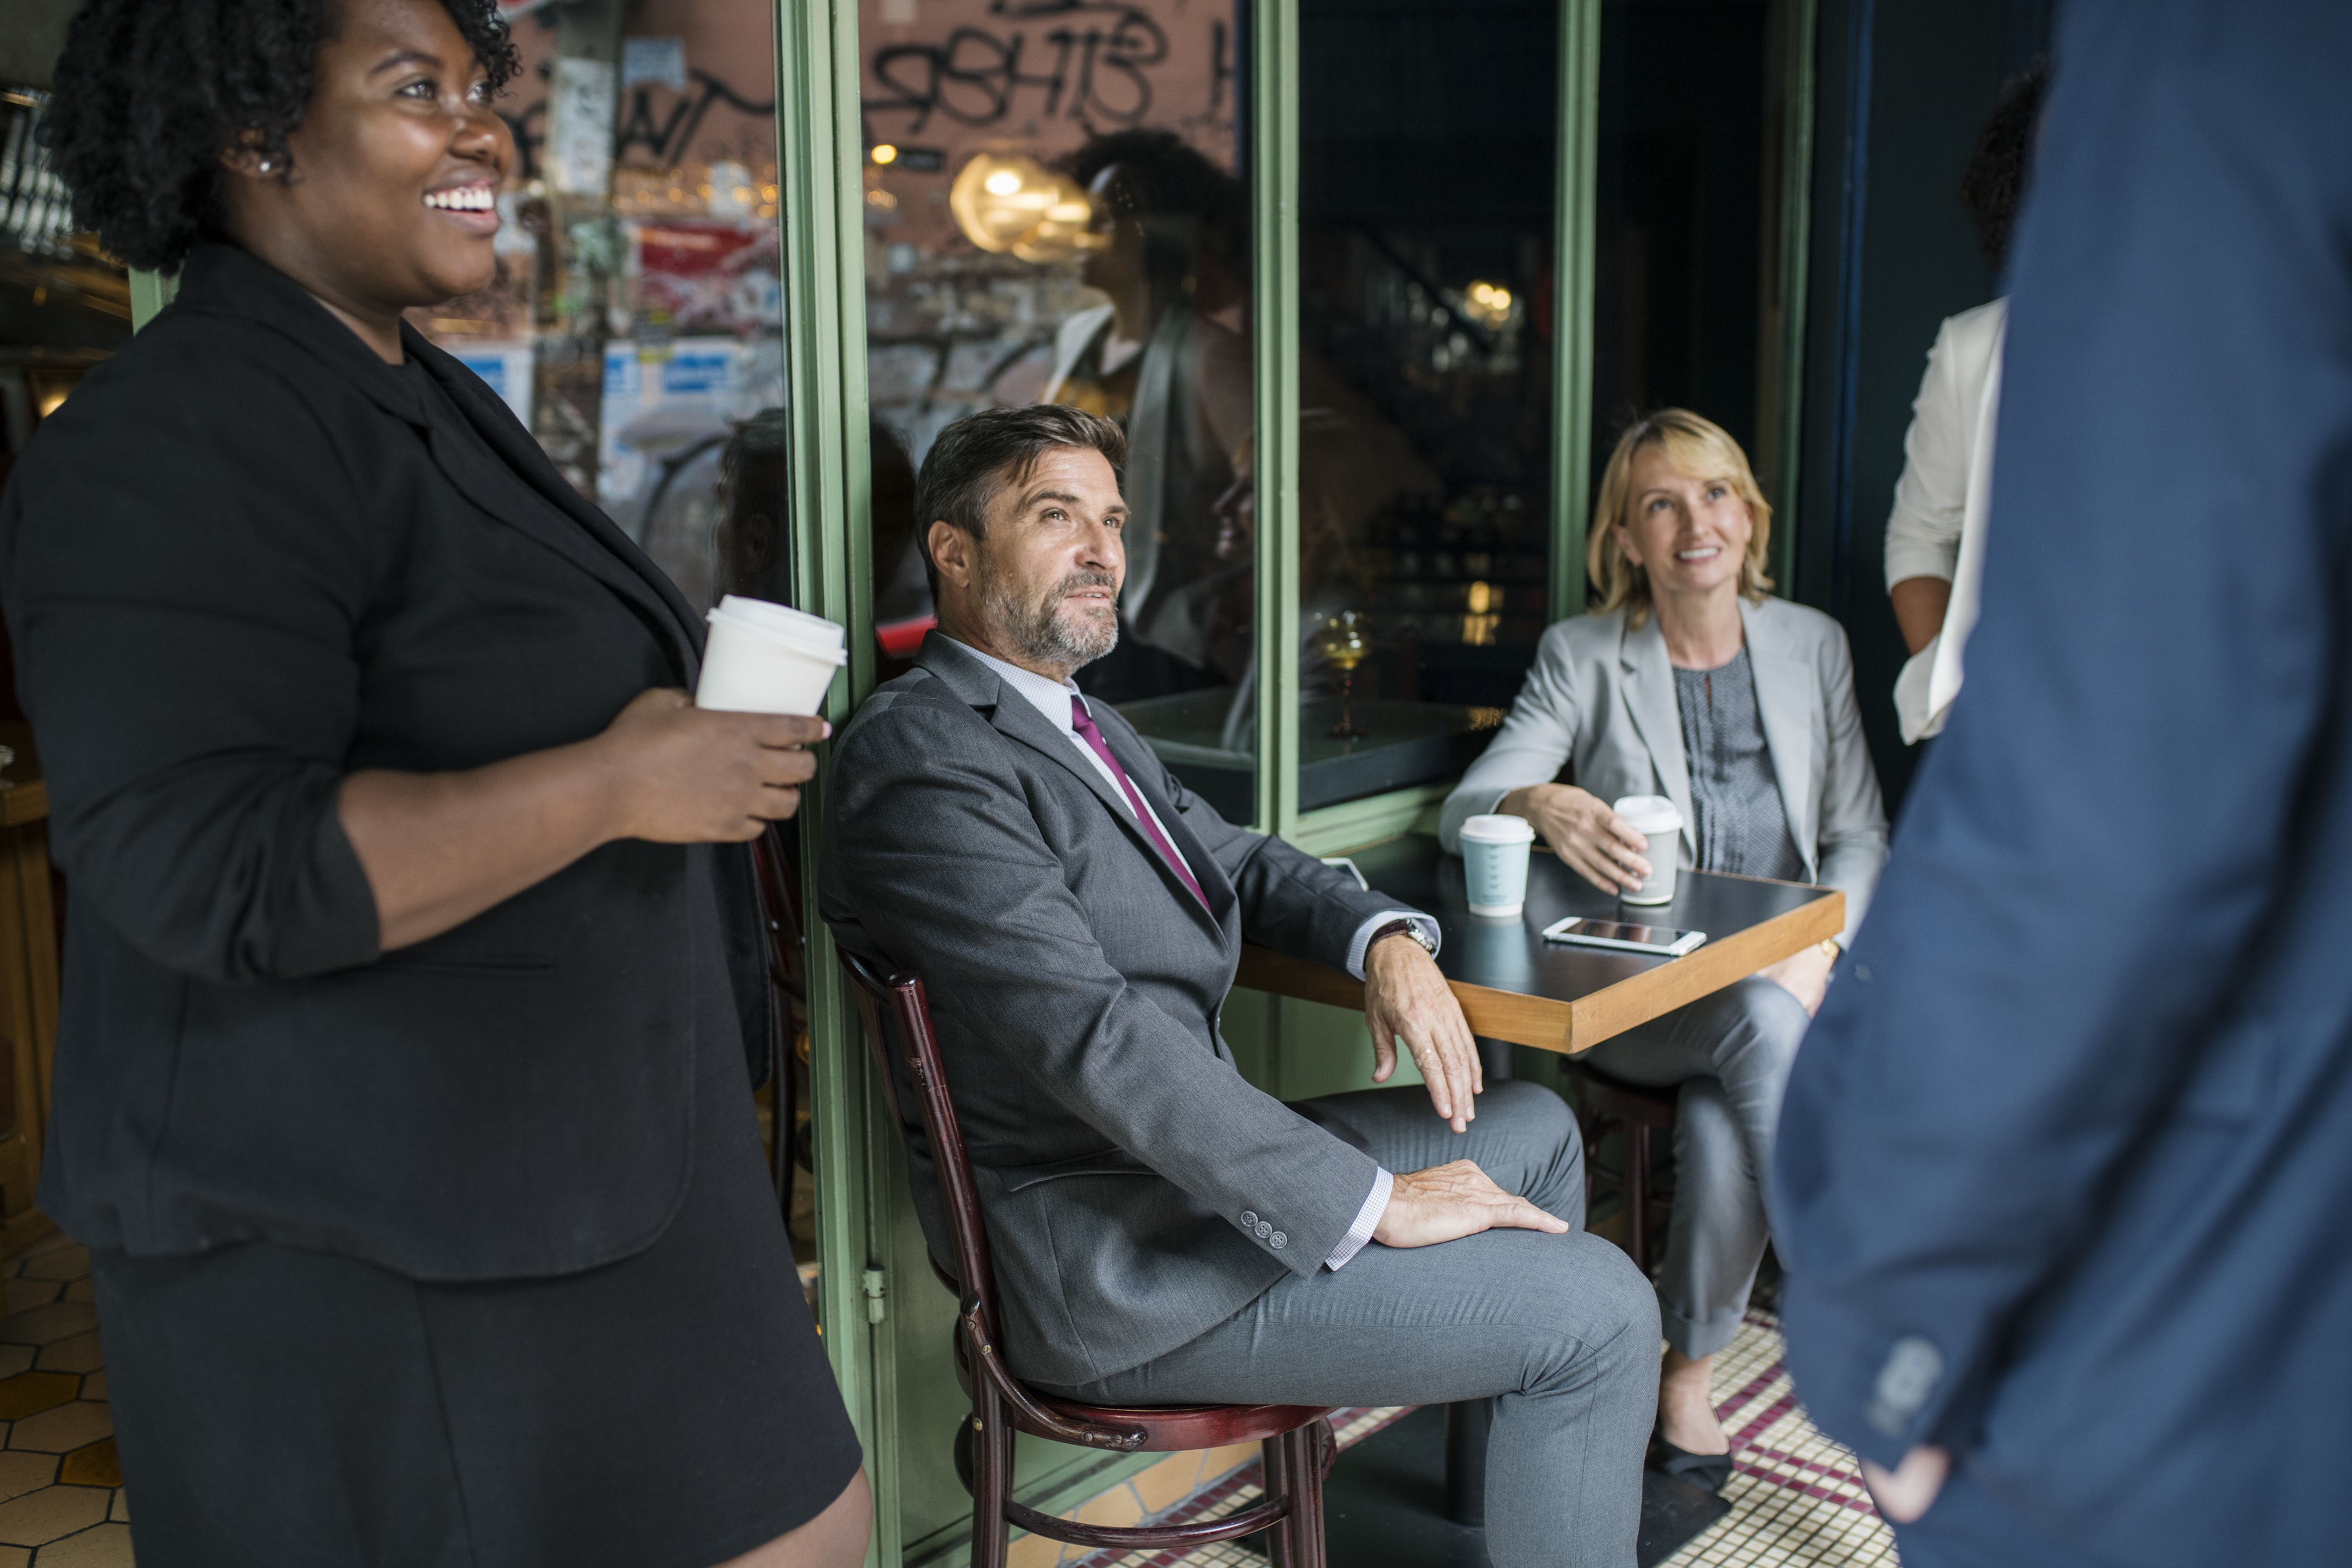 man in gray suit sitting with women